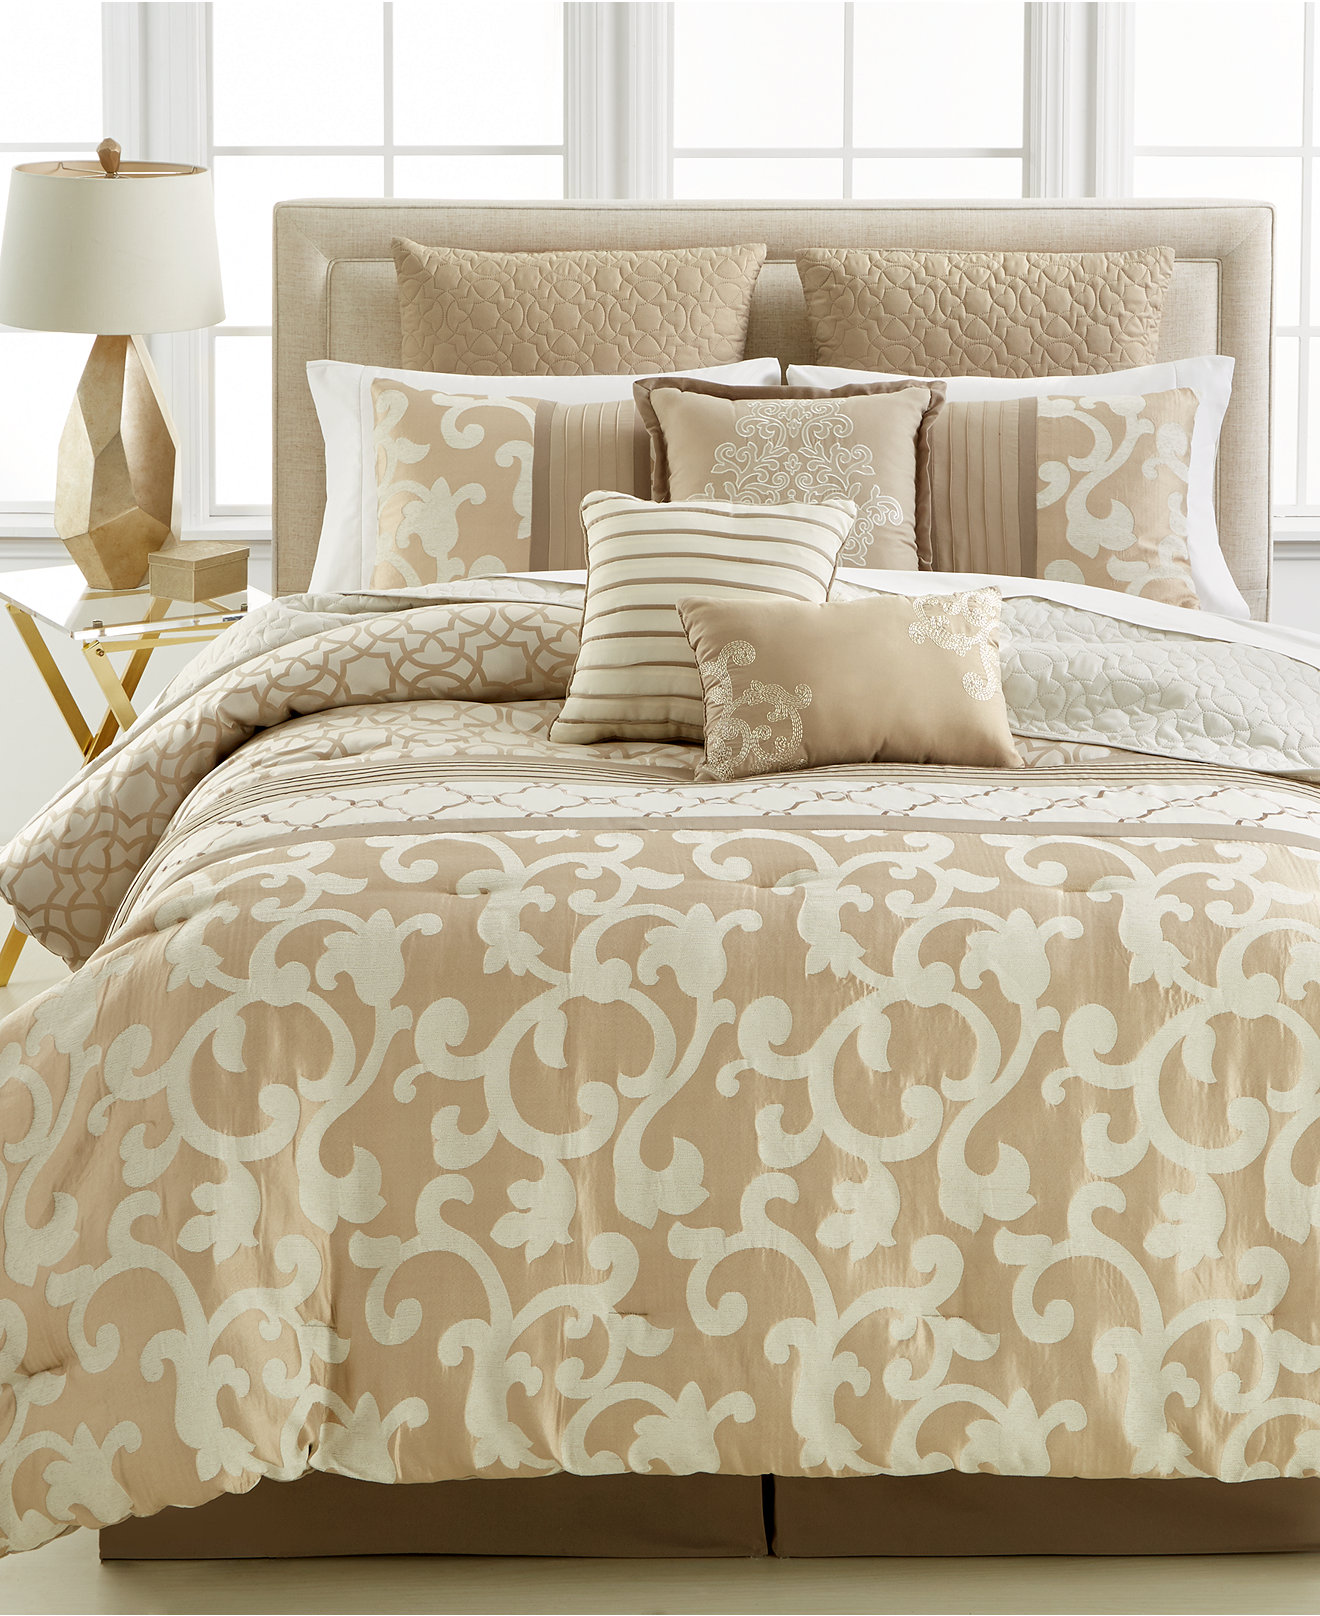 Alluring full comforter sets Bed queen size and king bedsize also pillows and cushion combined with headboards and curtains